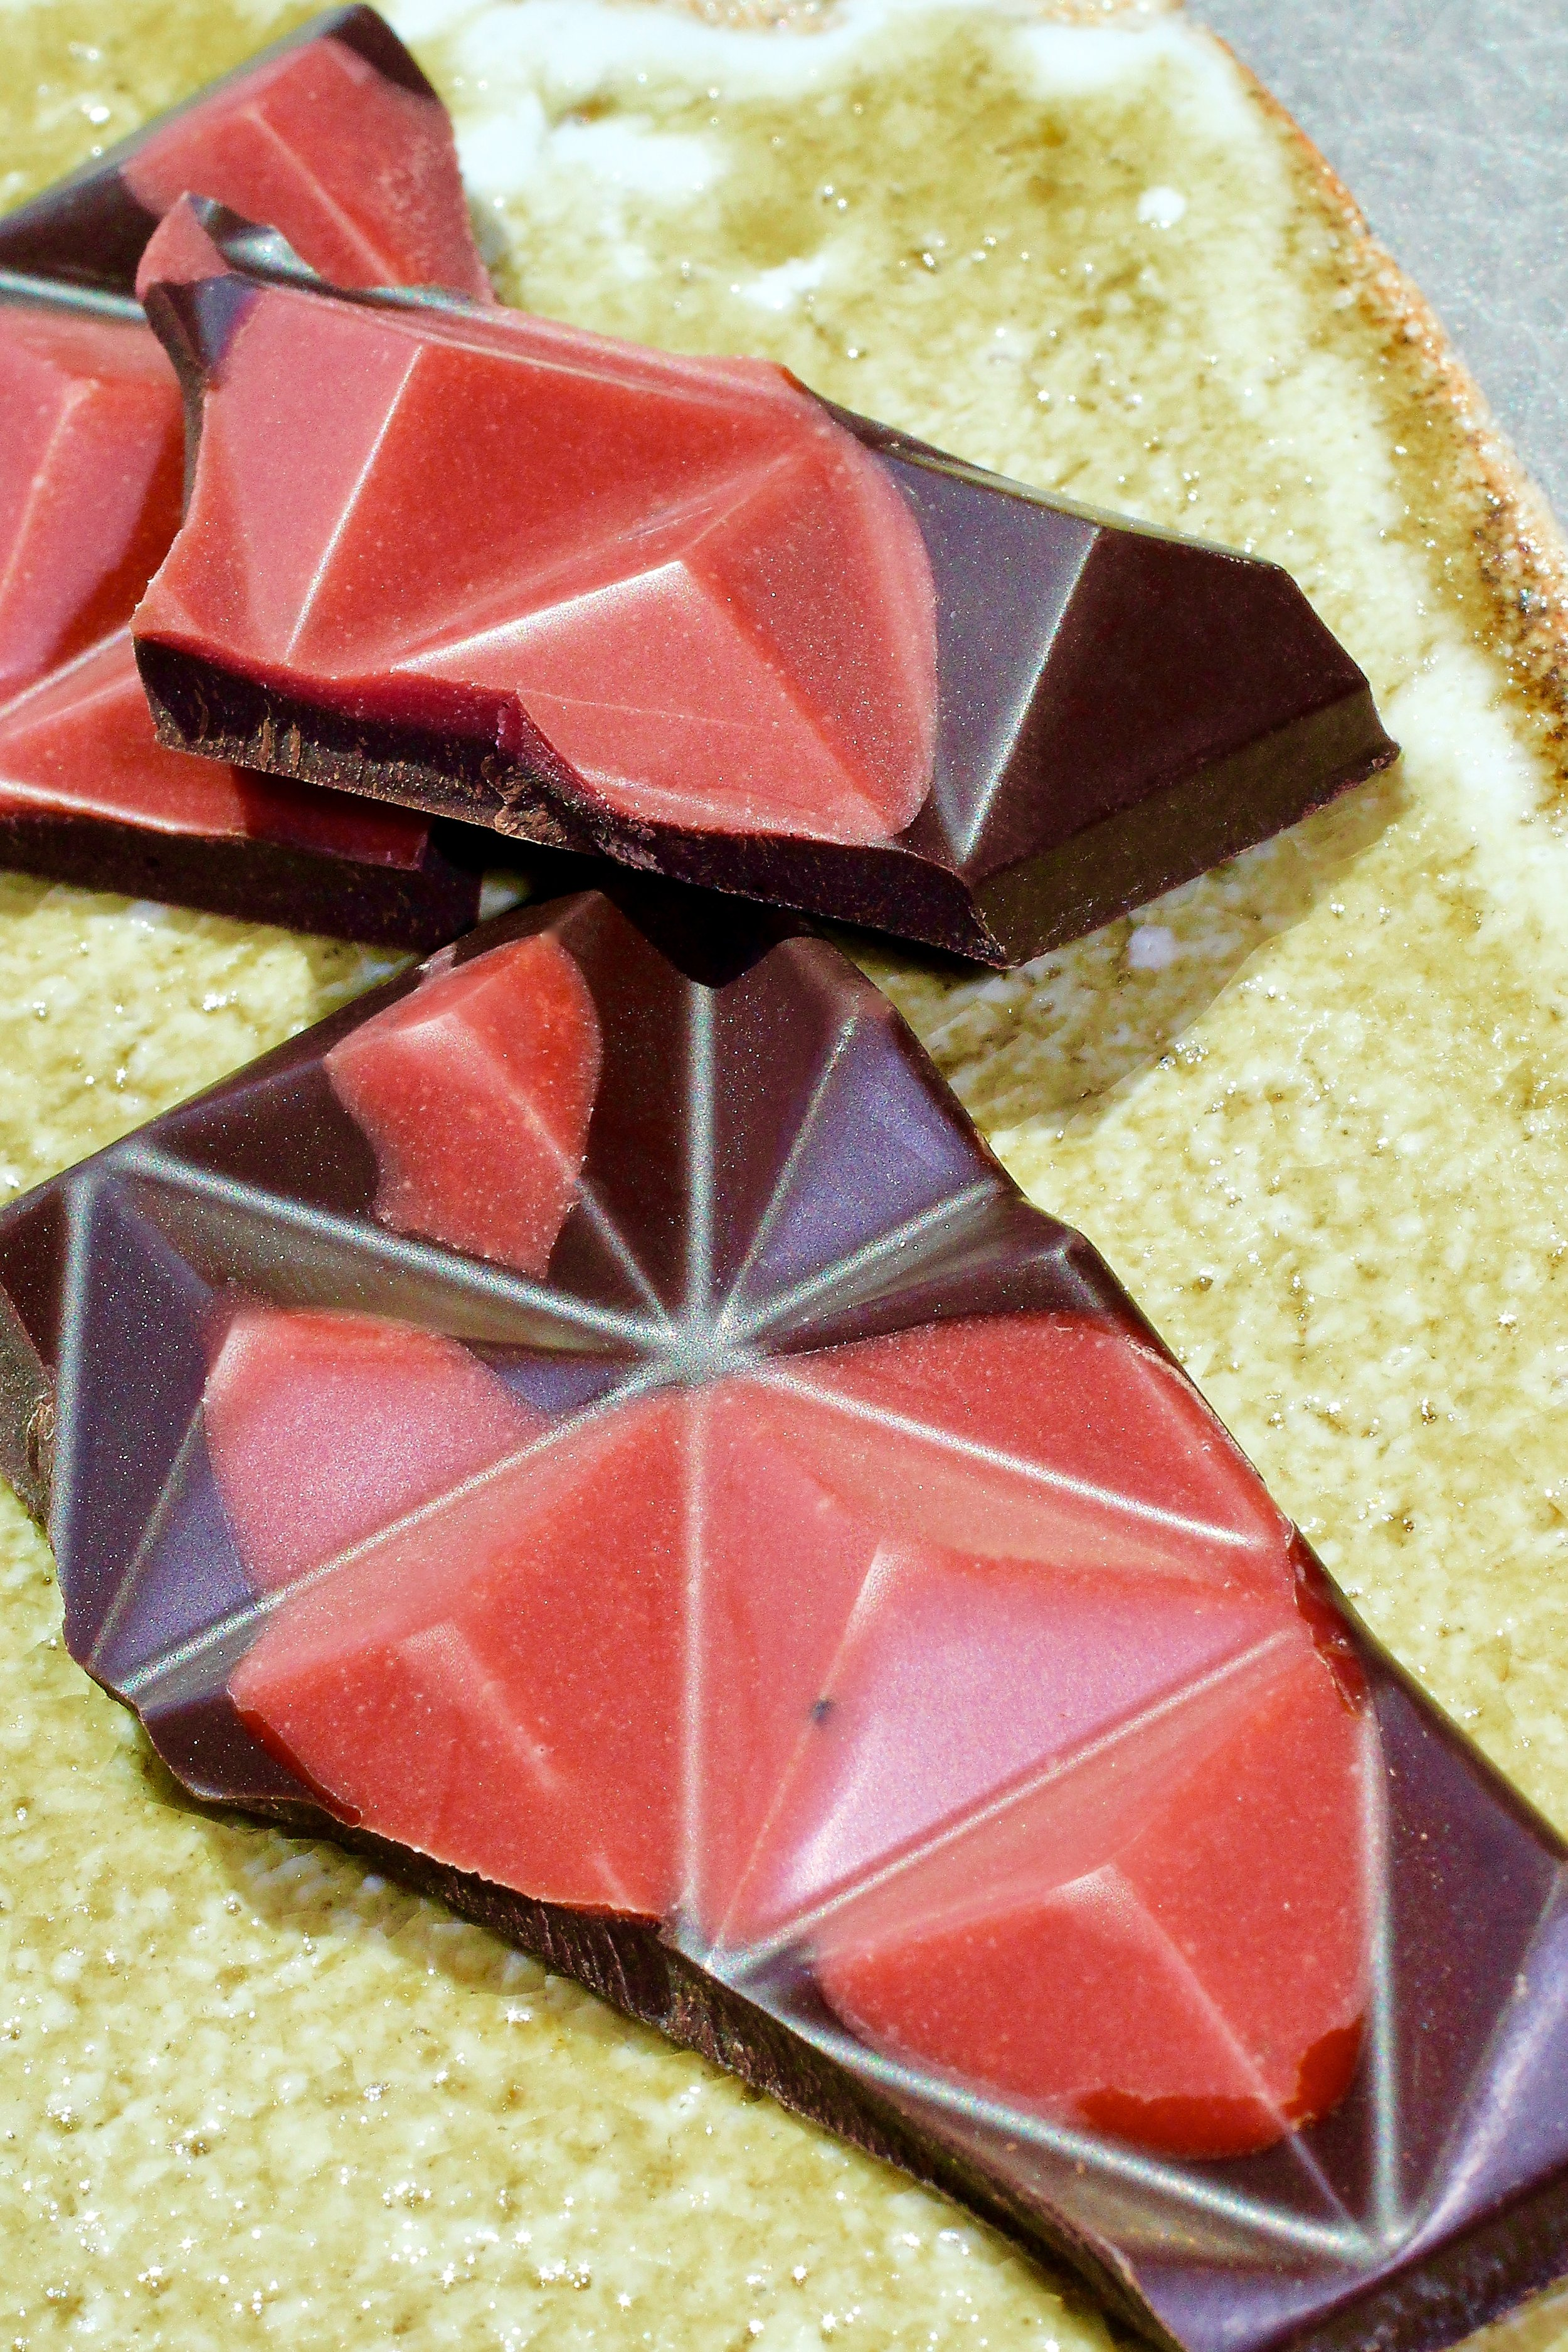 - Inspired by the Japanese flavors of Founder and Head Chocolatier Michiko Marron-Kibbey's childhood spent in Japan and French techniques learned in Paris, we offer stunning chocolates and candies made from premium French chocolate and delectable flavors from Japan.Enjoy your intentional indulgence today and everyday.Read our story.